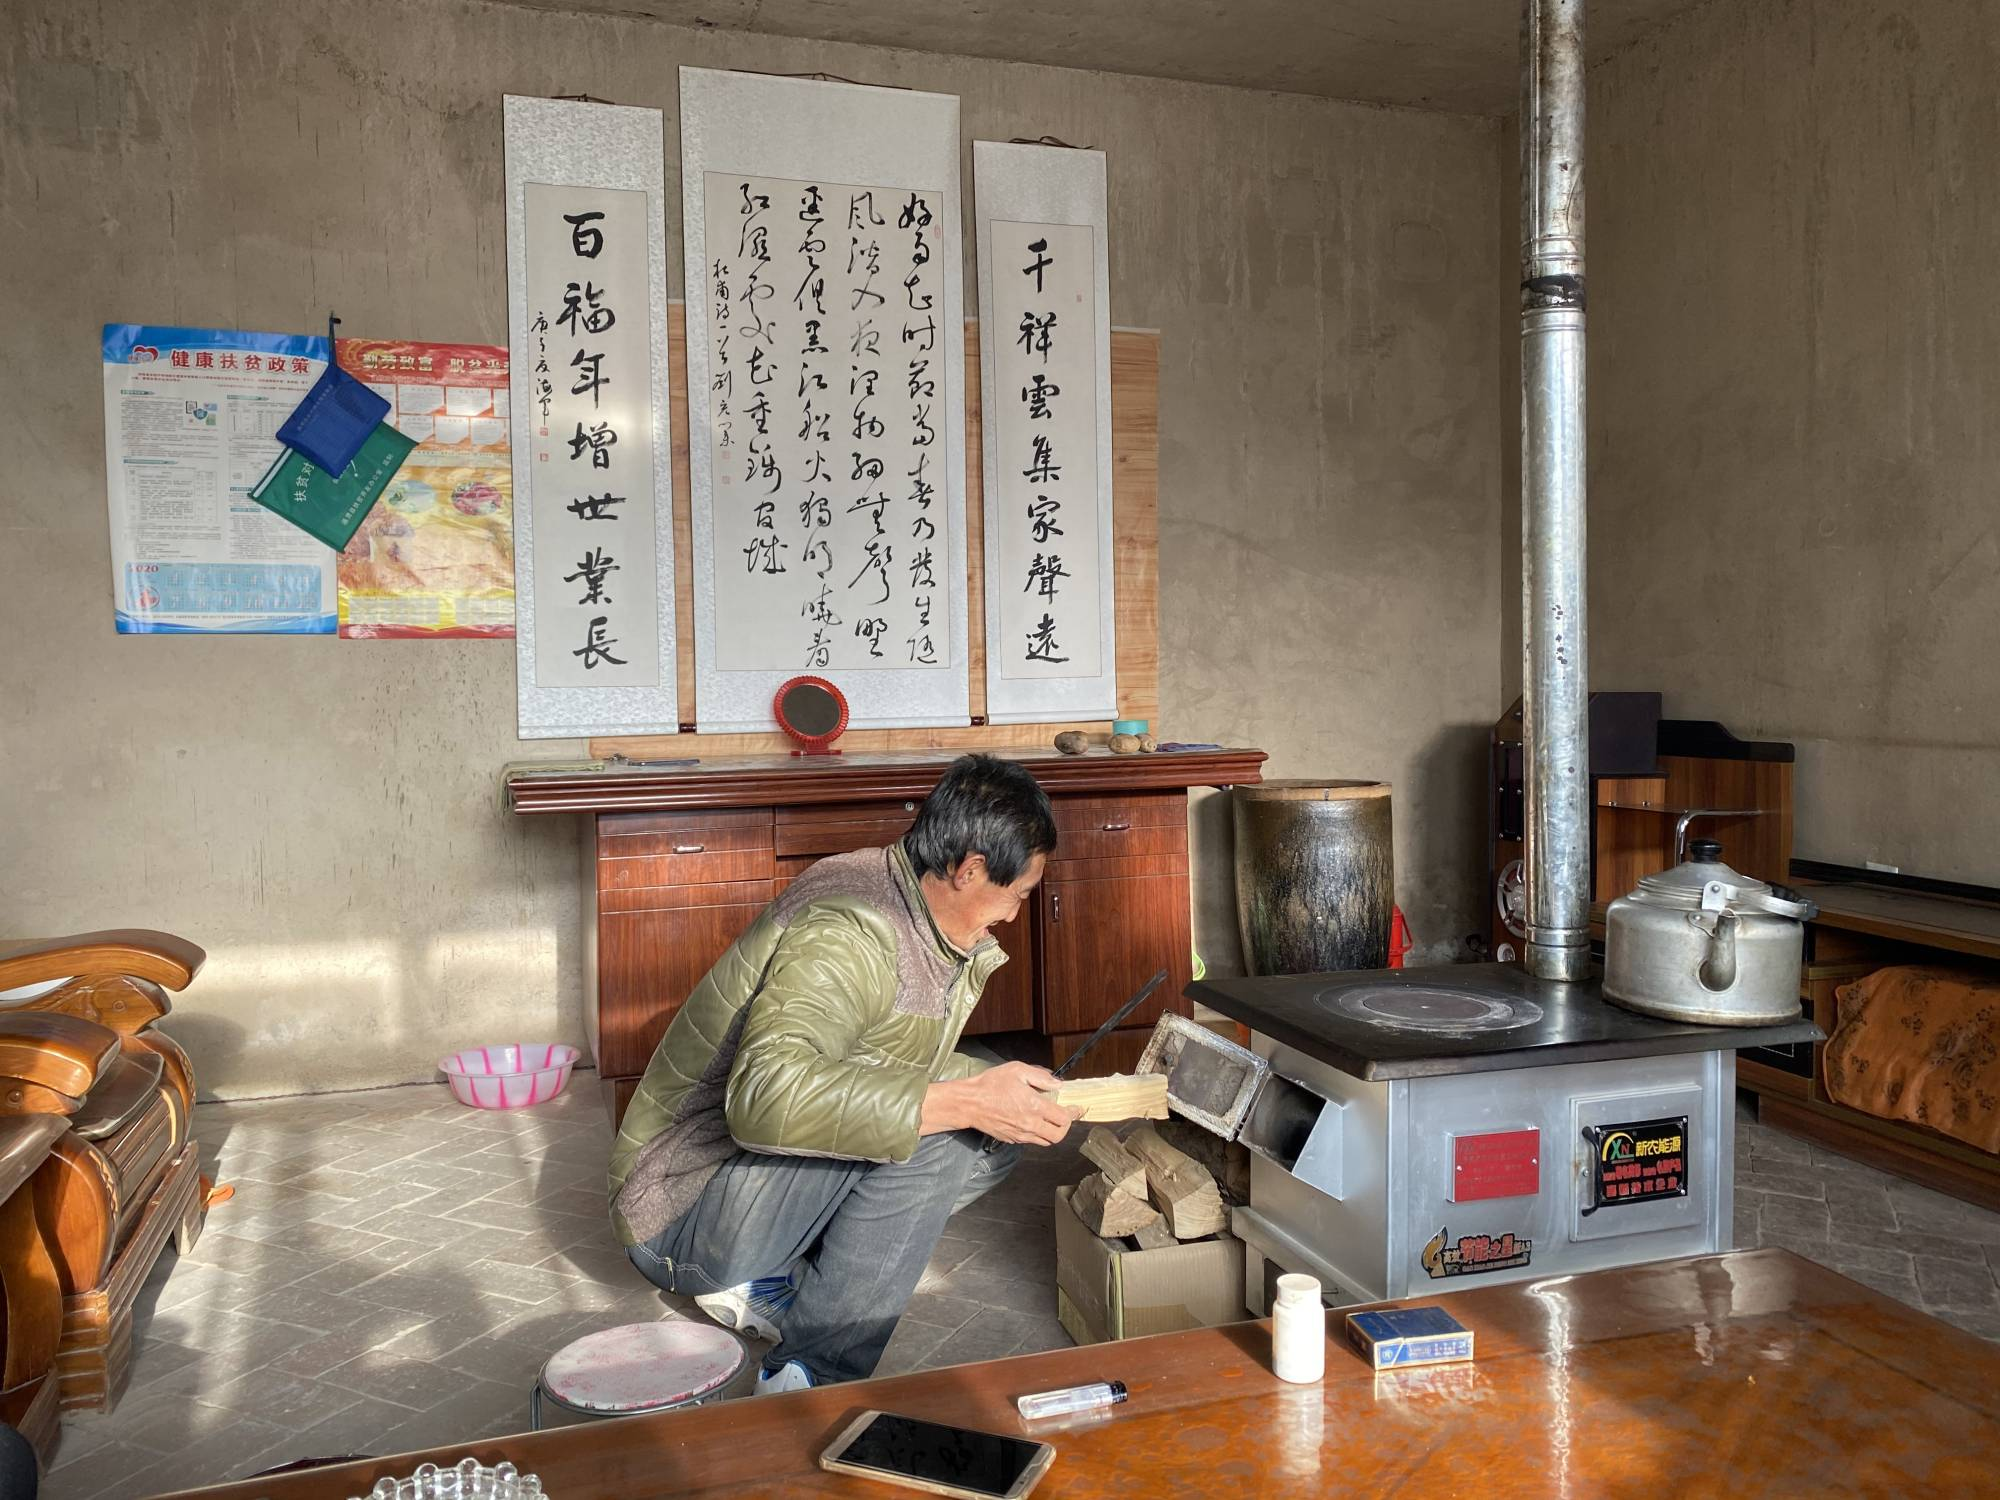 Su Zizhen, who lives in China's Gansu Province, received a home from from a poverty alleviation program. | KEITH BRADSHER / THE NEW YORK TIMES